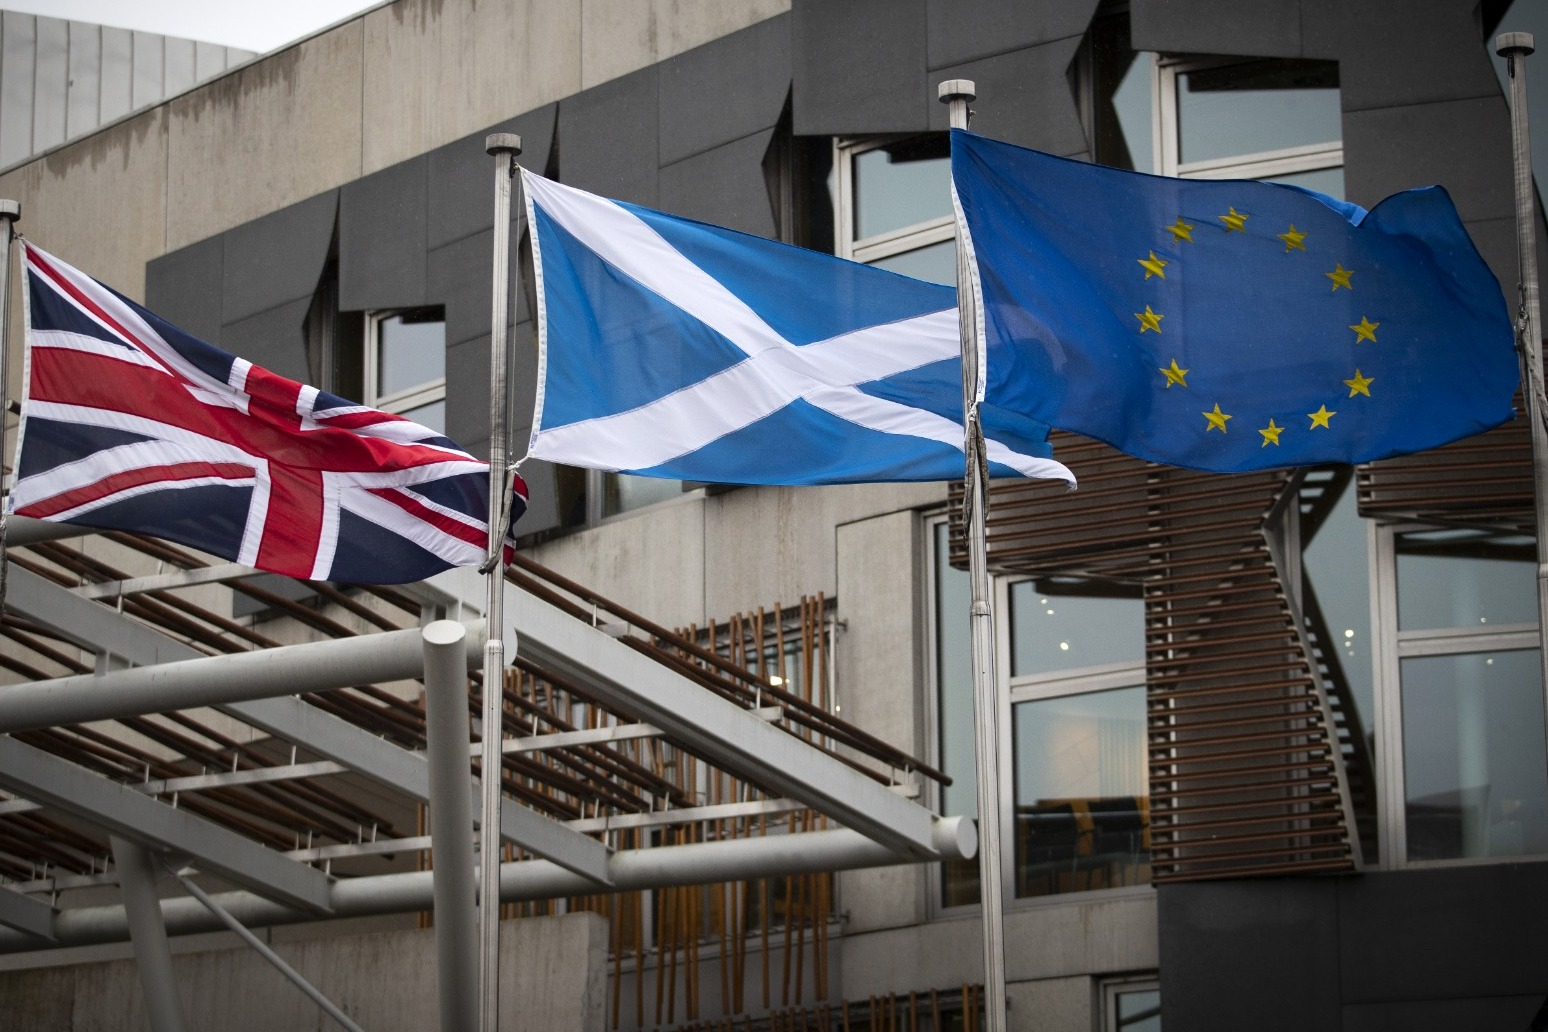 New poll suggests majority of Scots would vote against independence